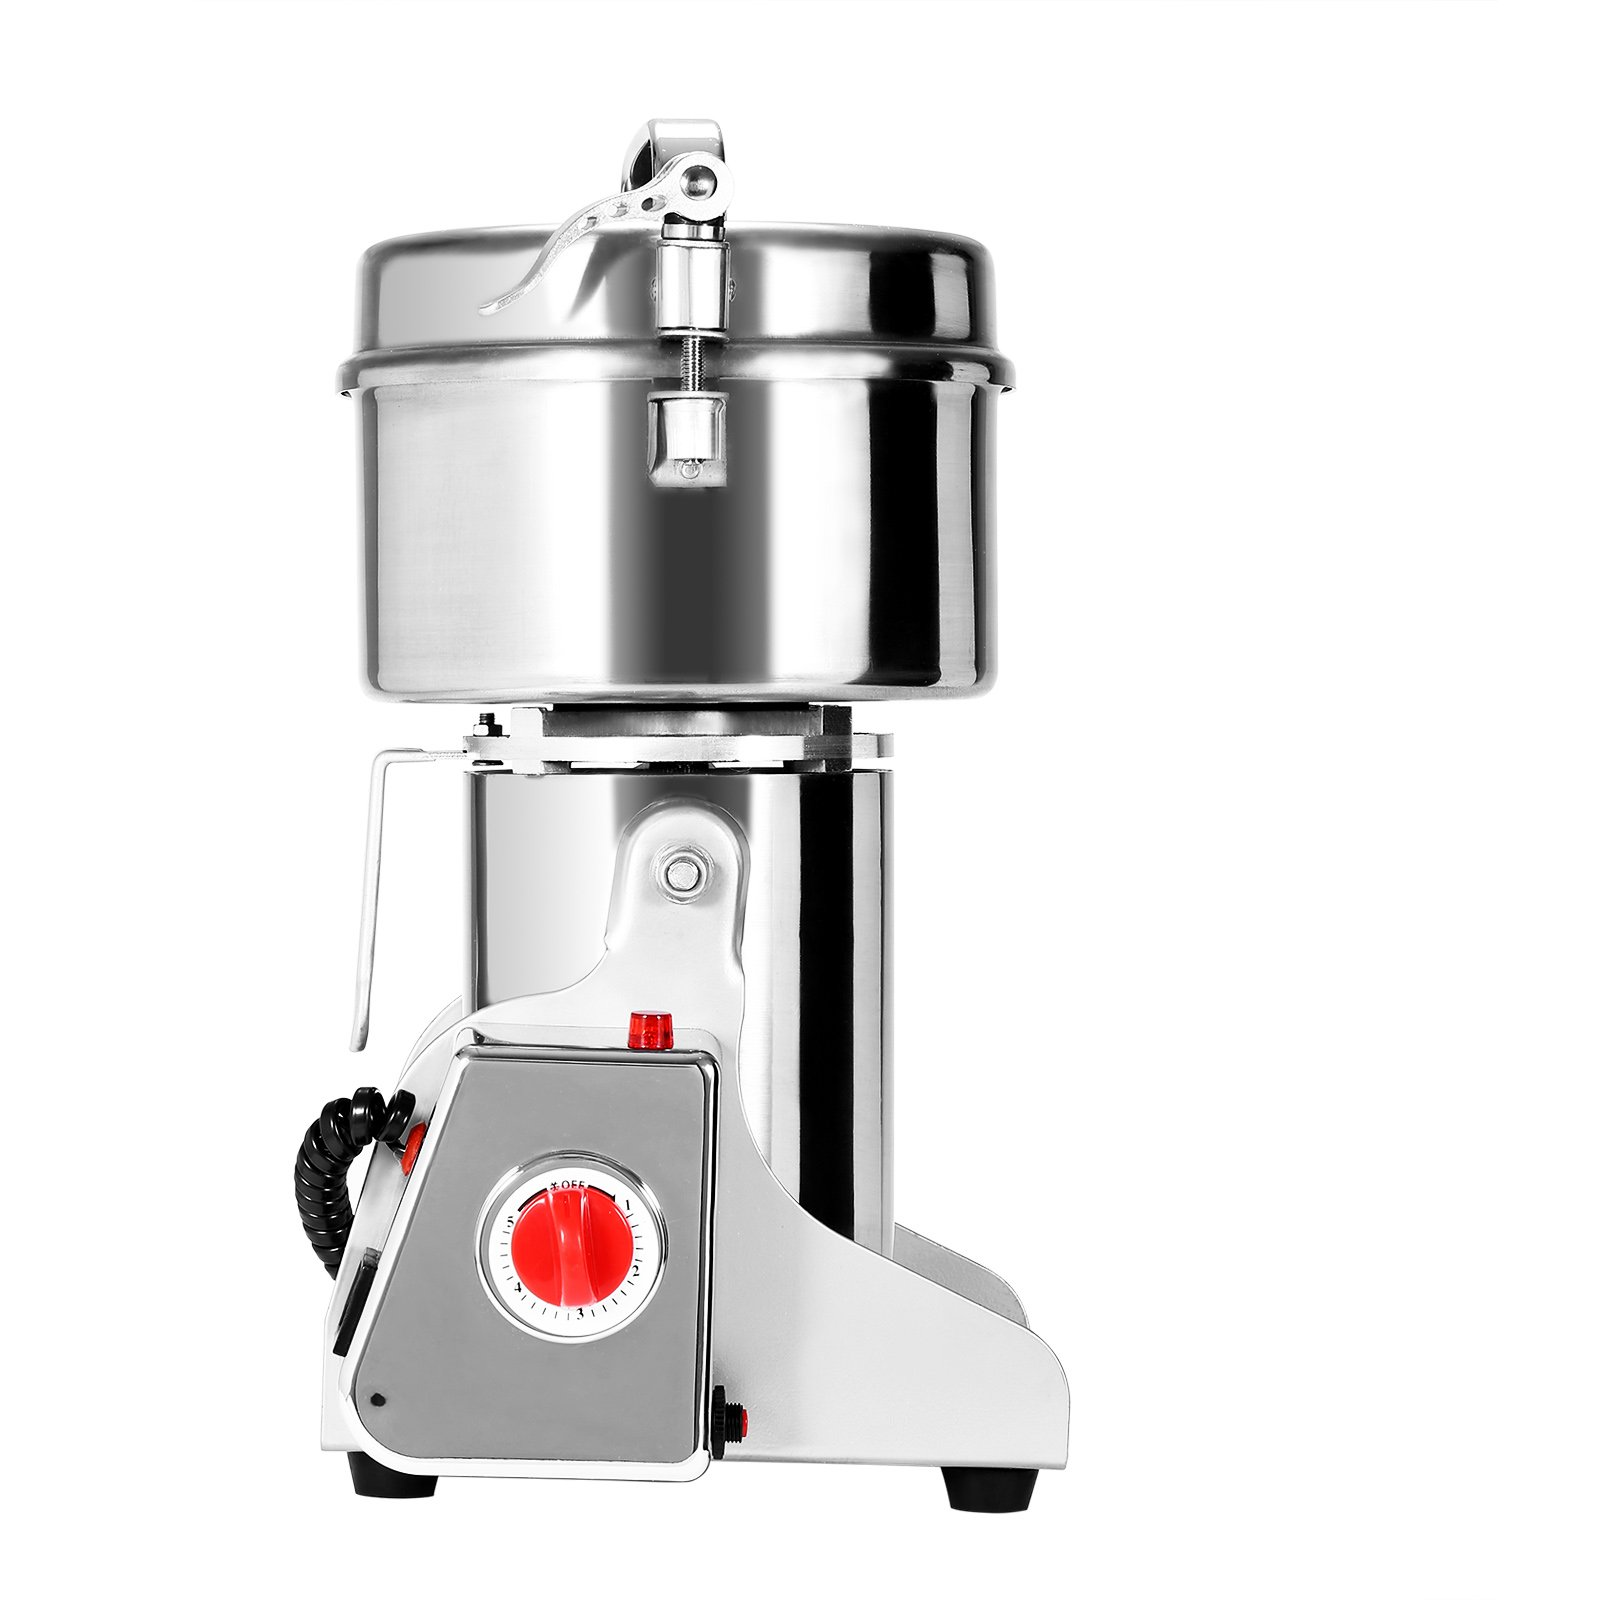 BestEquip 500g Electric Grain Grinder High Speed Swing Type Grain Grinder Machine 2300W Powder Machine for Grinding Various Grains Spice (500g)